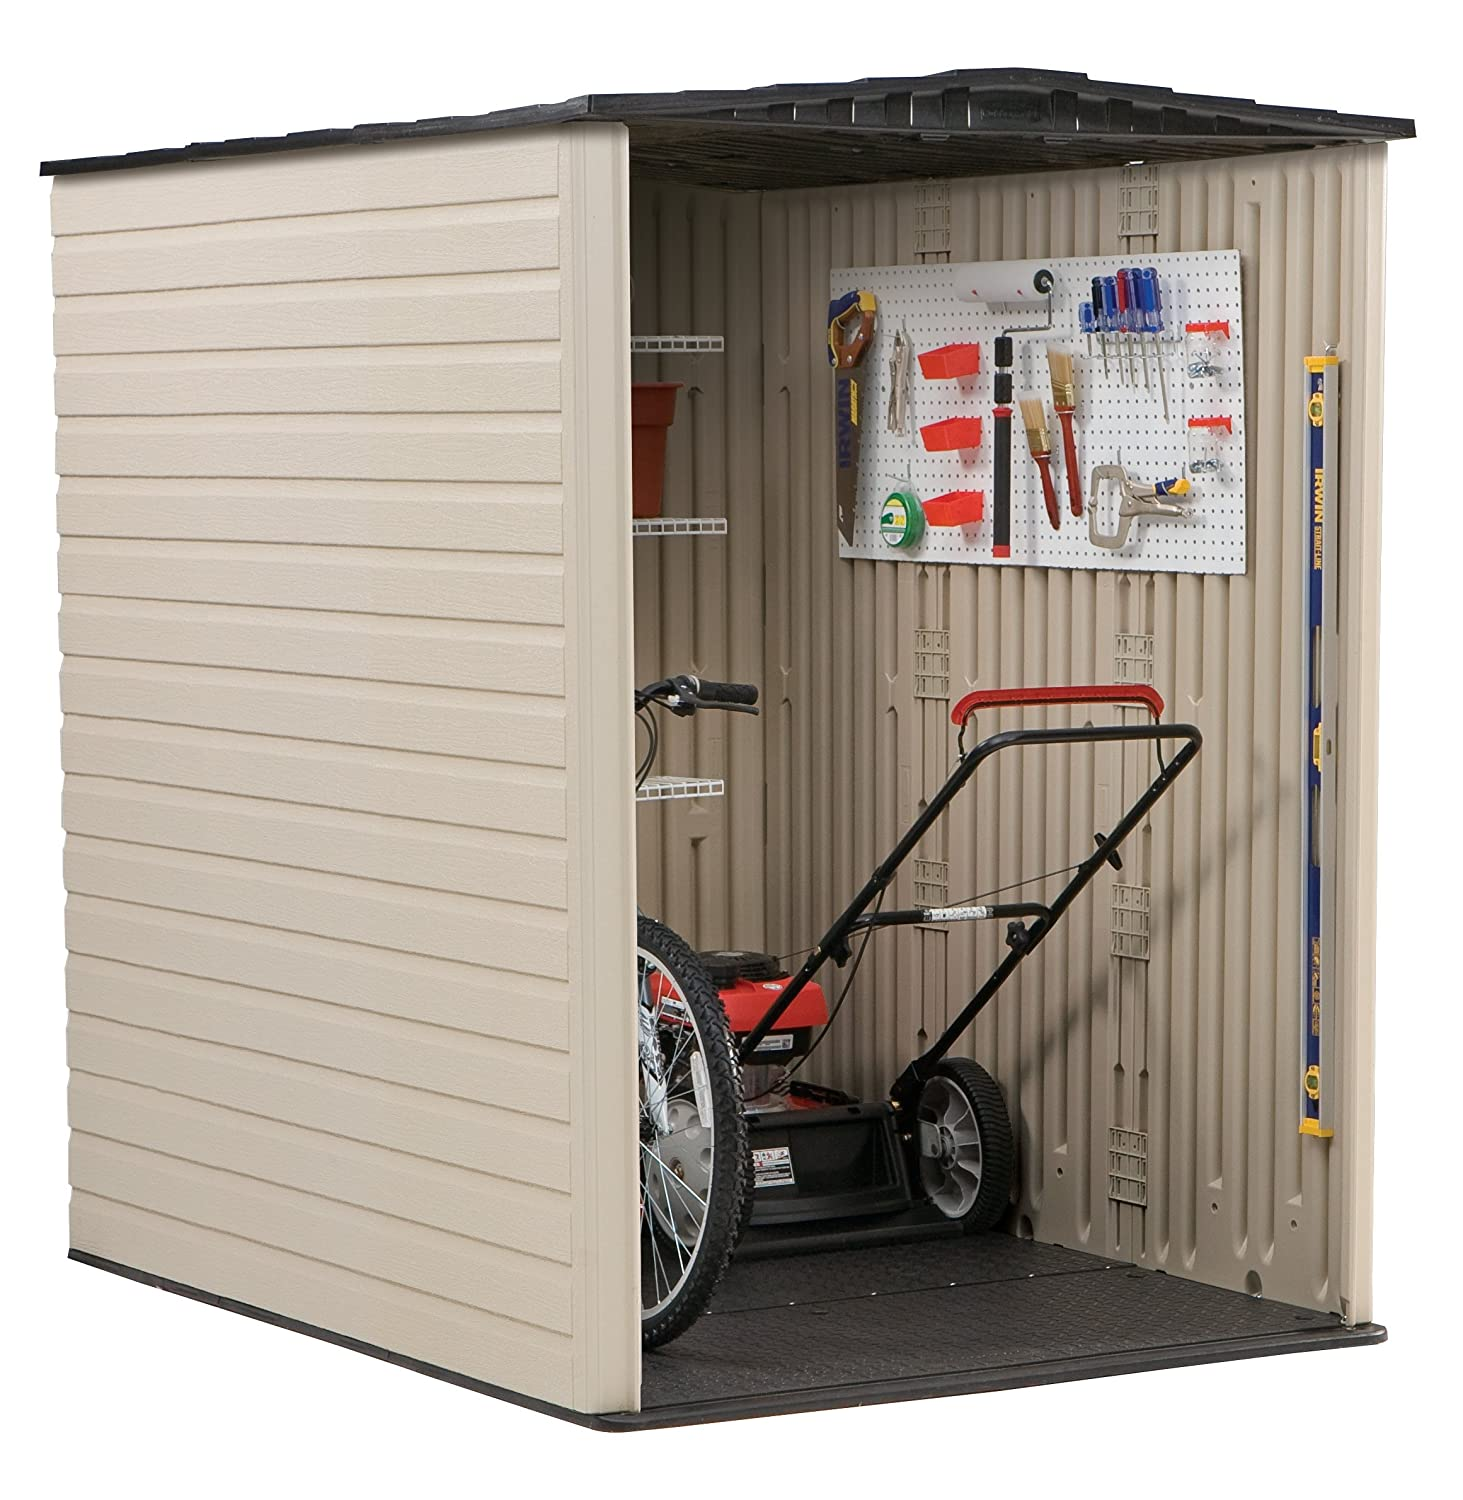 amazoncom rubbermaid plastic large outdoor storage shed 159 cu ft sandalwood with onyx roof fg5l3000sdonx garden outdoor - Garden Sheds 7x7